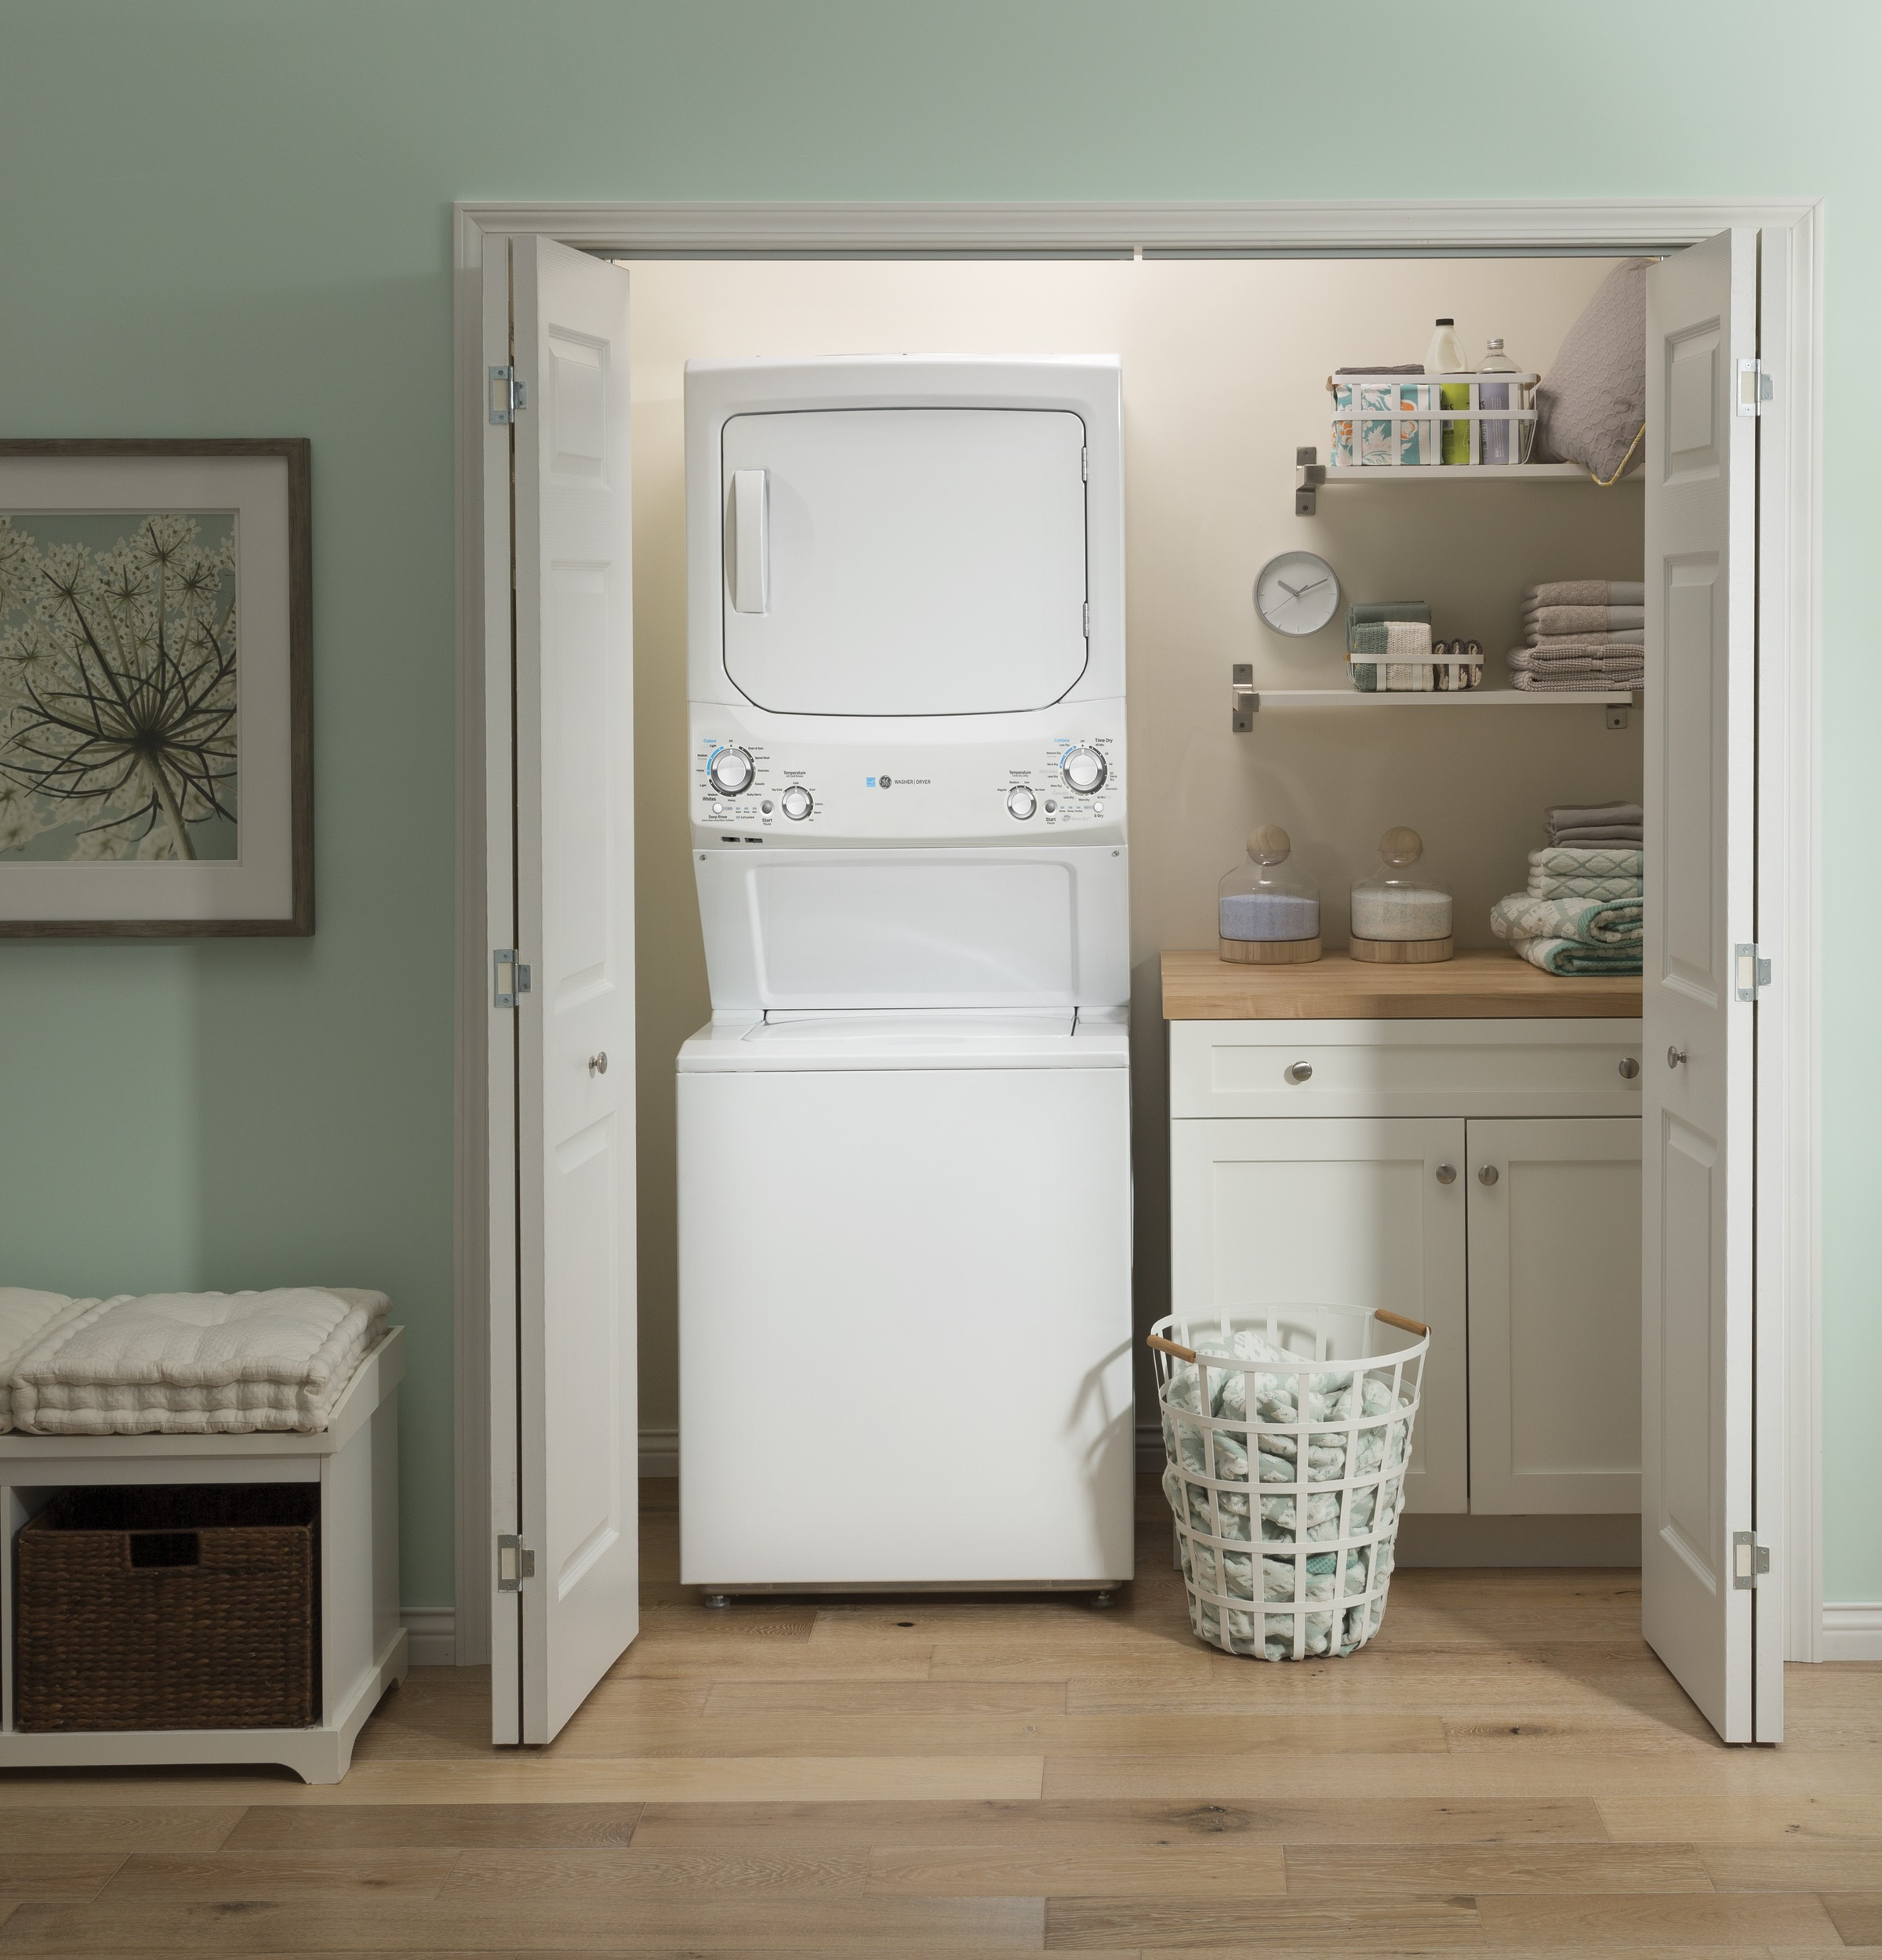 Model: GUD27GESNWW | GE GE Unitized Spacemaker® 3.9 cu. ft. Capacity Washer with Stainless Steel Basket and 5.9 cu. ft. Capacity Gas Dryer